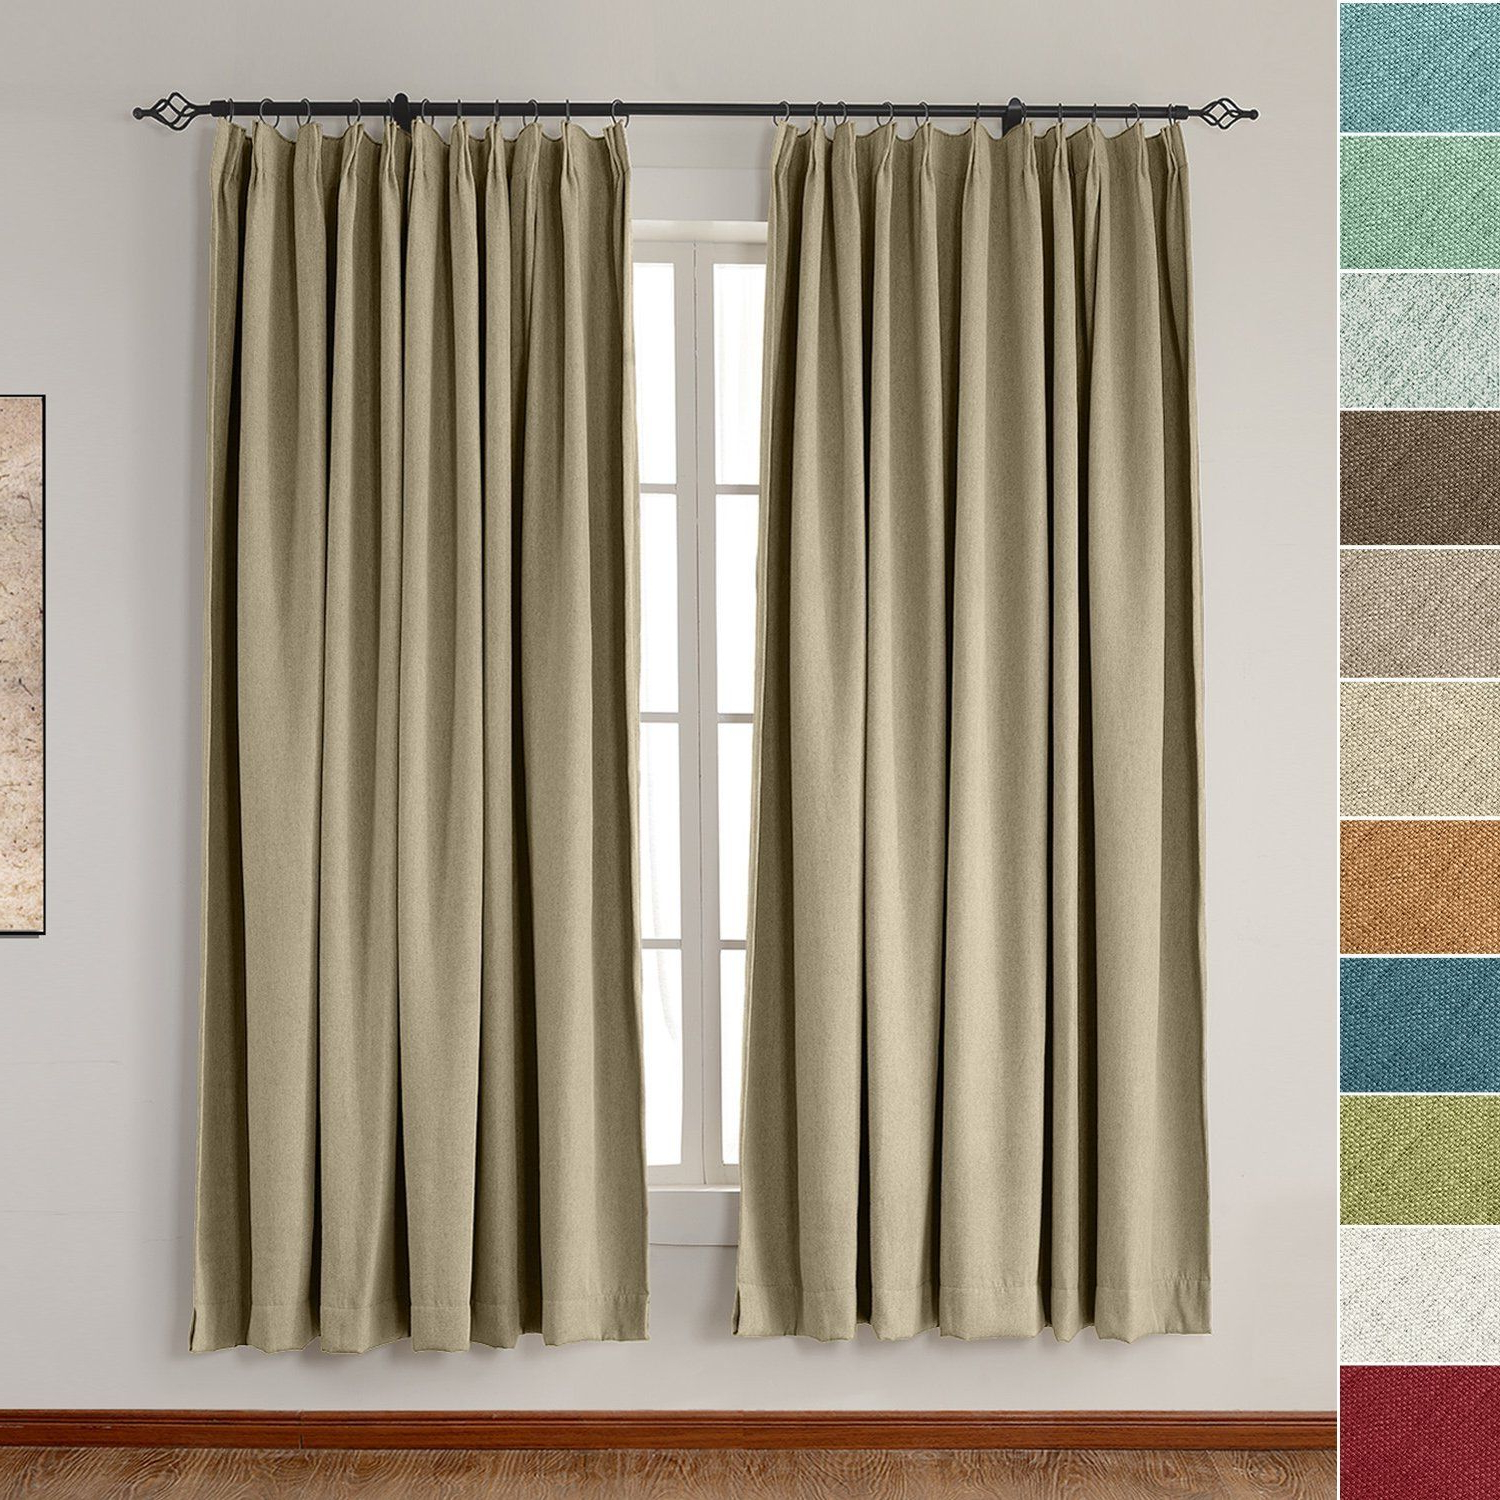 Newest Faux Linen Extra Wide Blackout Curtains Throughout Amazon: Extra Wide Heavyweight Luxury Faux Linen Curtain (View 15 of 21)